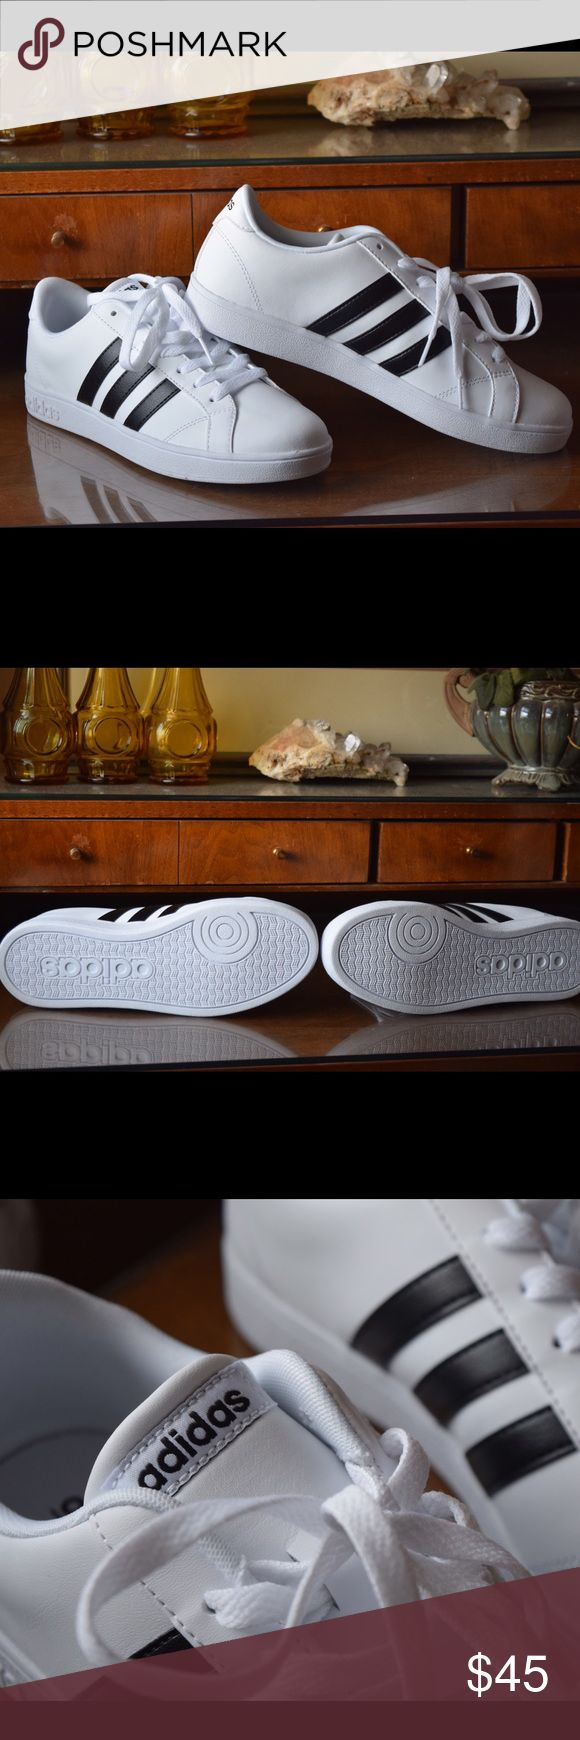 Adidas Baseline Shoes - NEW Brand New. White Women's size 8.5. Classic Baseline Shoes. No damage or discoloration. Adidas Shoes Sneakers